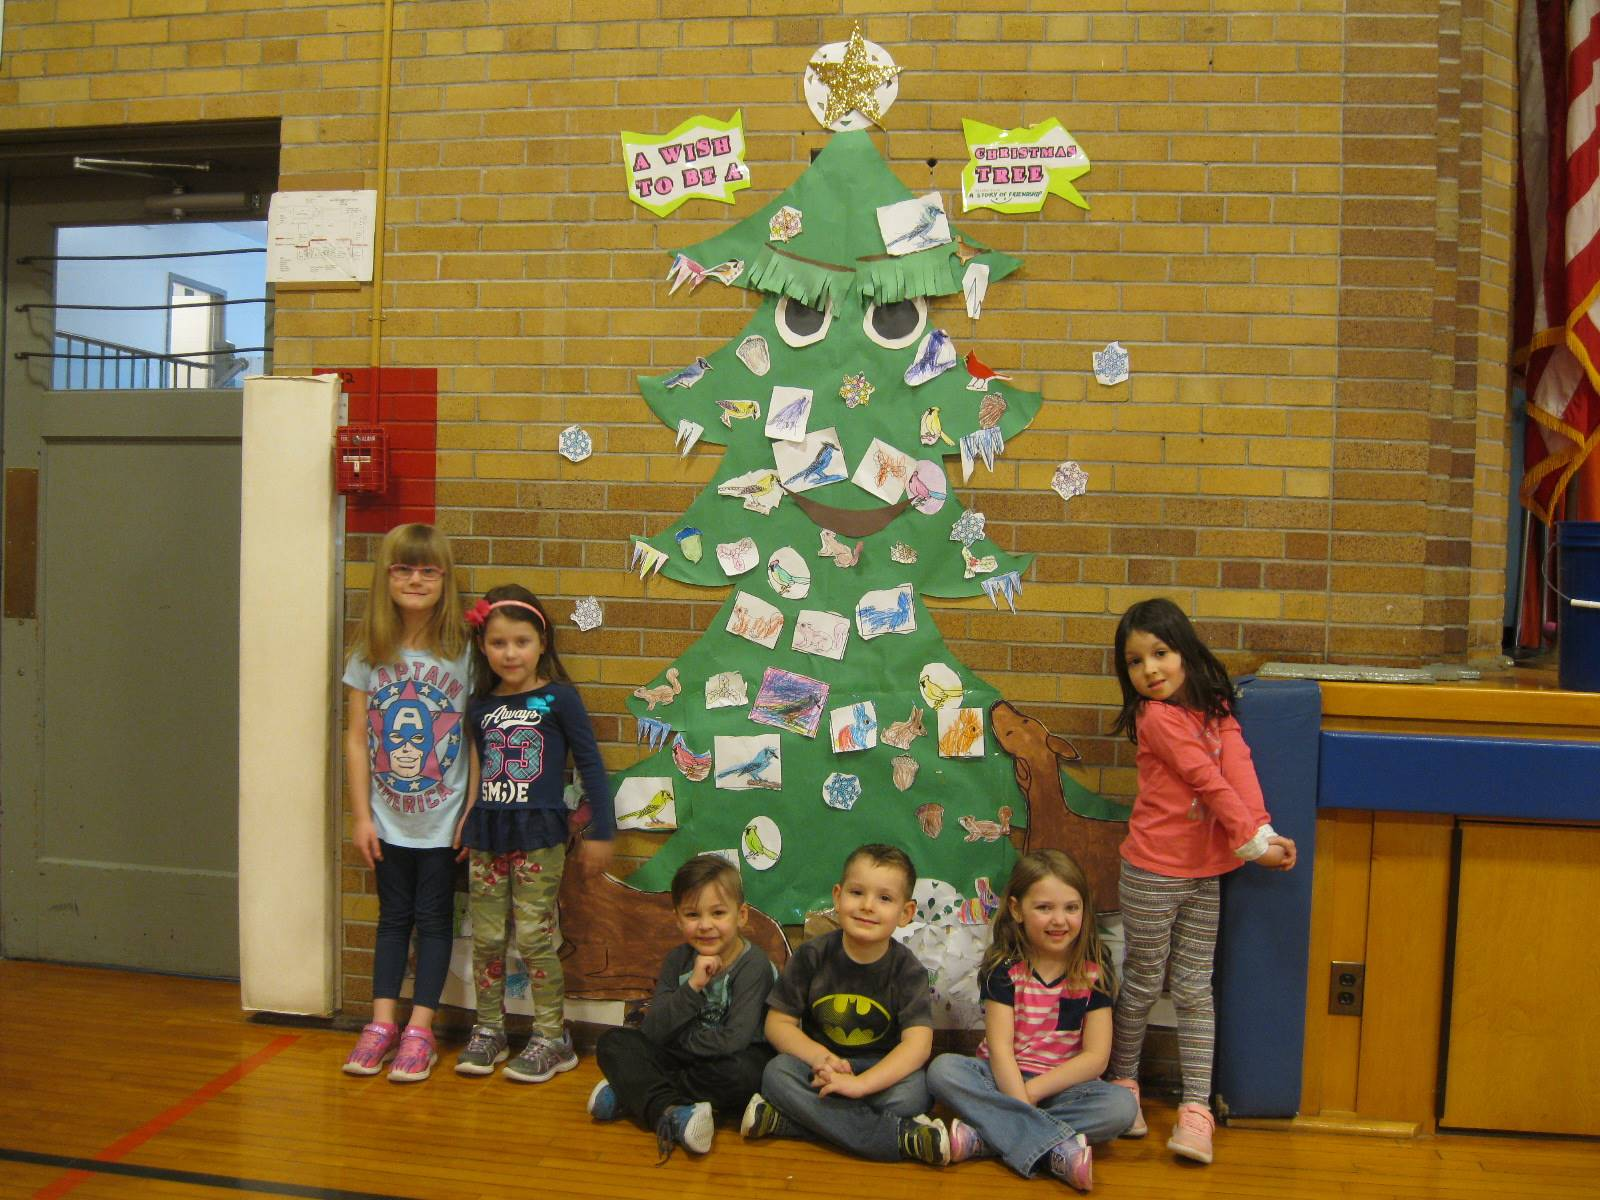 Students stand next to the tree they helped to decorate with nature.